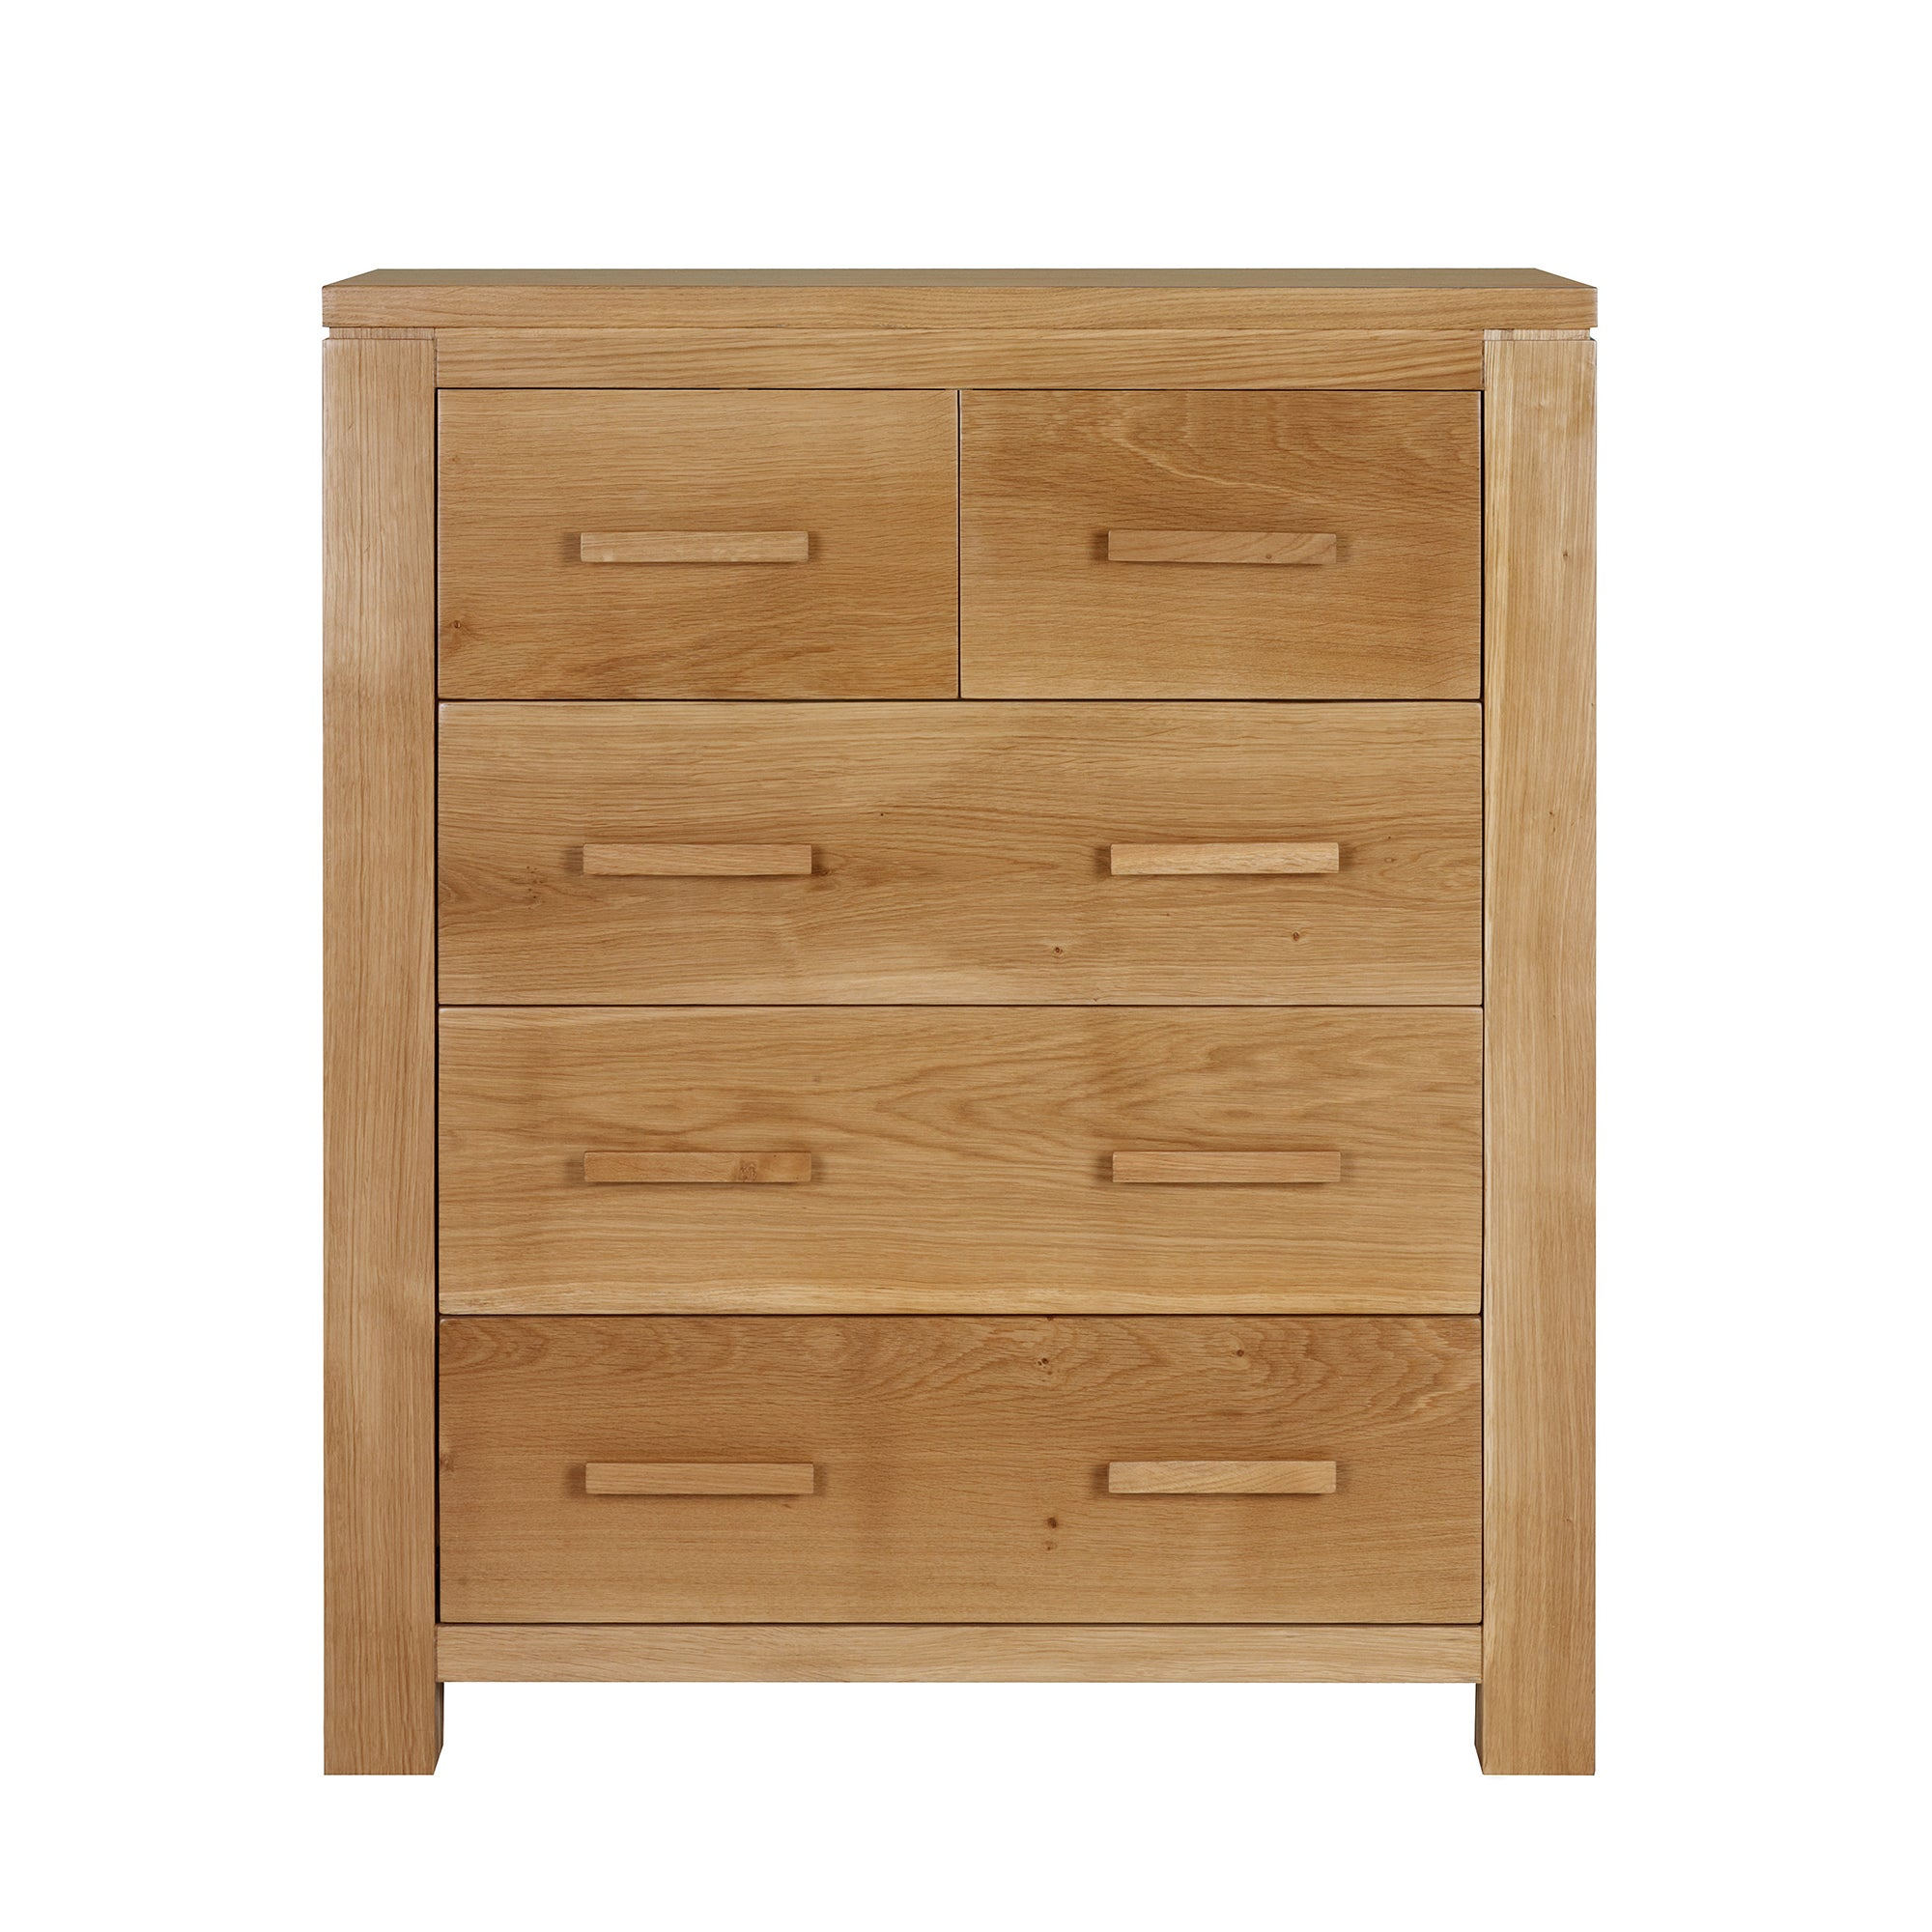 Seville Oak Chest of Drawers